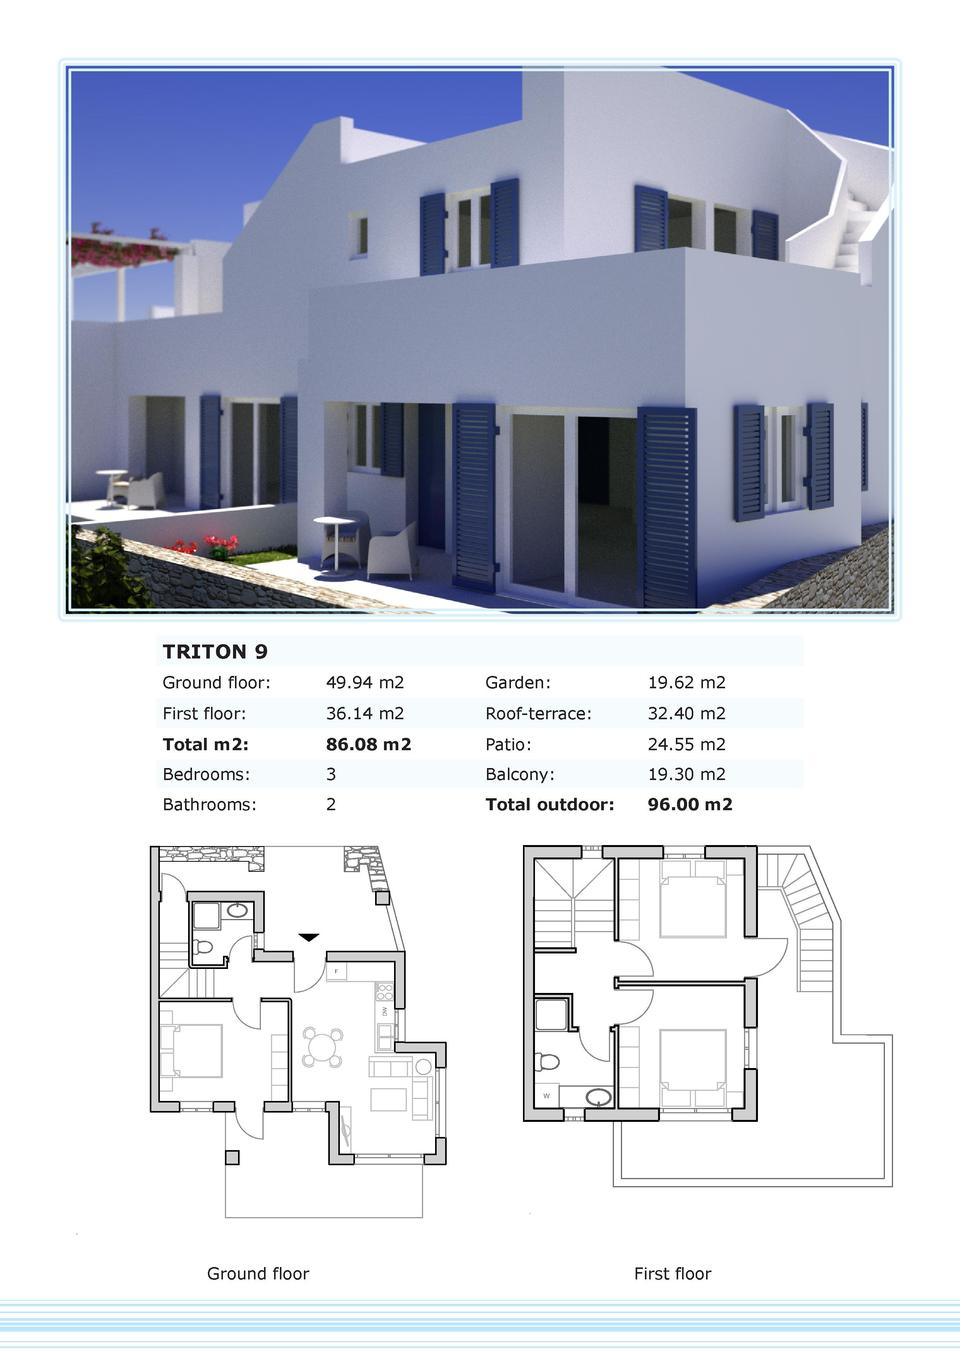 TRITON 9 Ground floor   49.94 m2  Garden   19.62 m2  First floor   36.14 m2  Roof-terrace   32.40 m2  Total m2   86.08 m2 ...